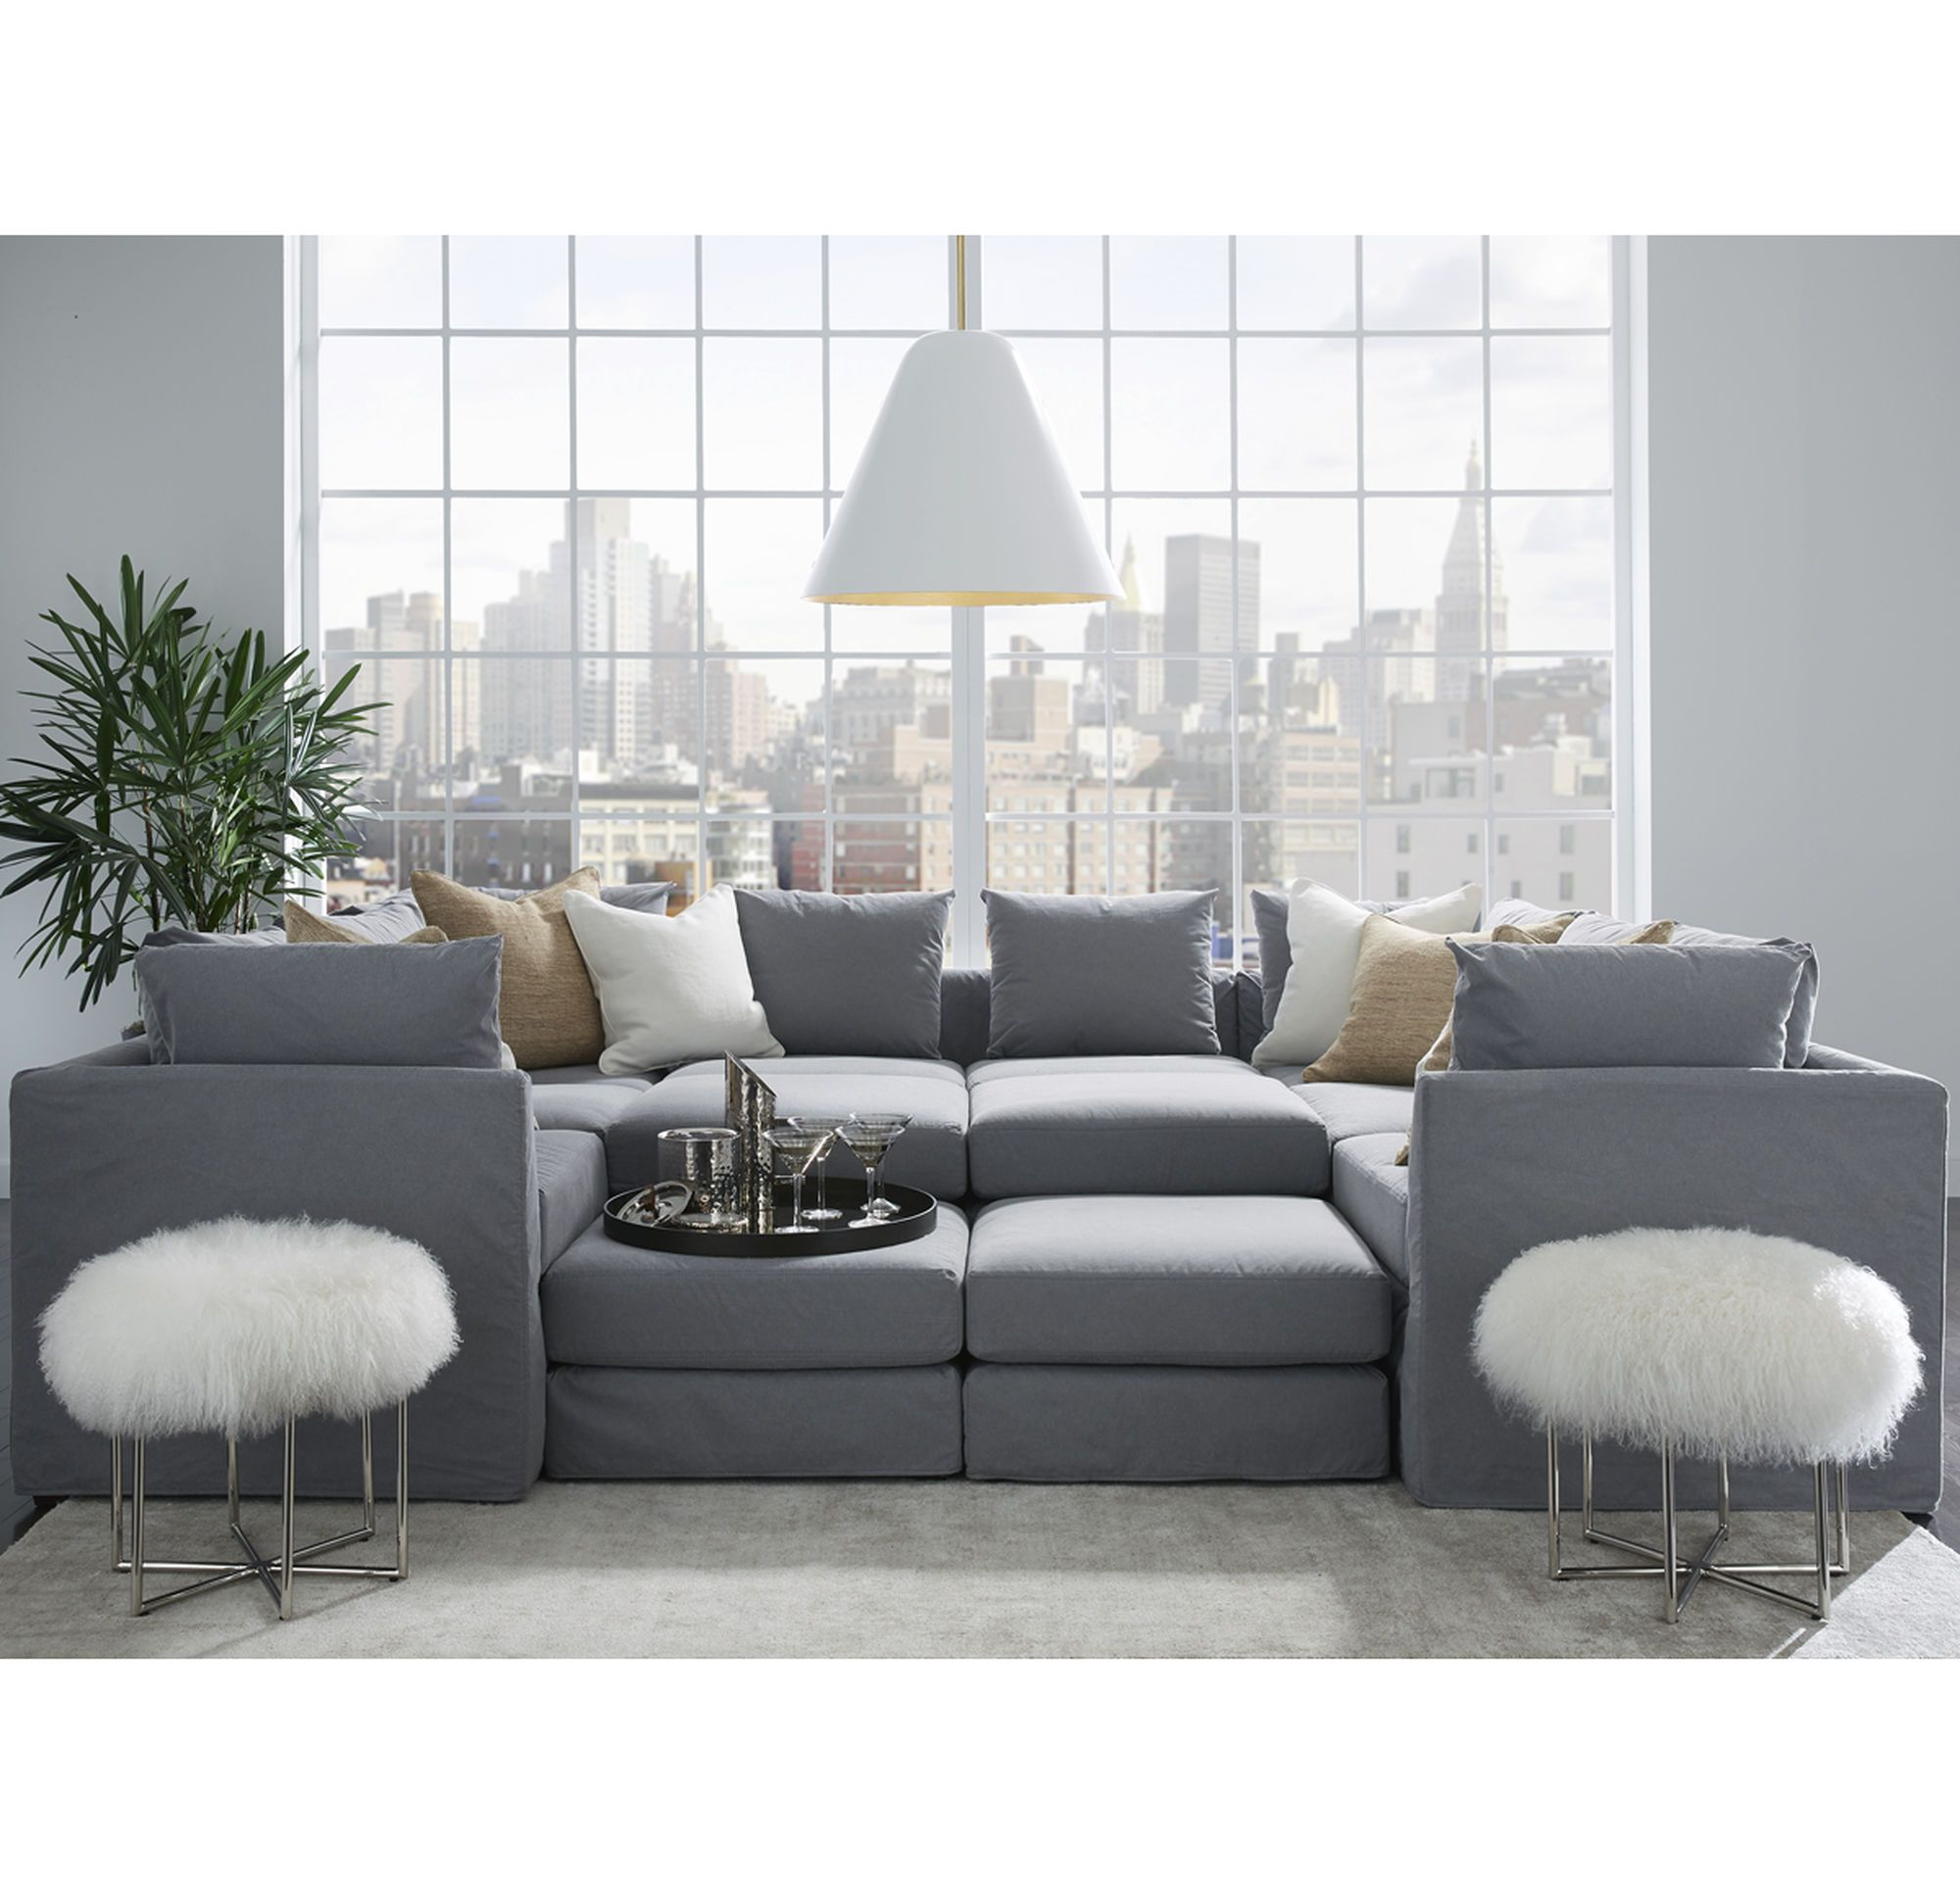 Outstanding Dr Pitt 7 Pc Sectional Sofa Chambray Denim Basement In Bralicious Painted Fabric Chair Ideas Braliciousco